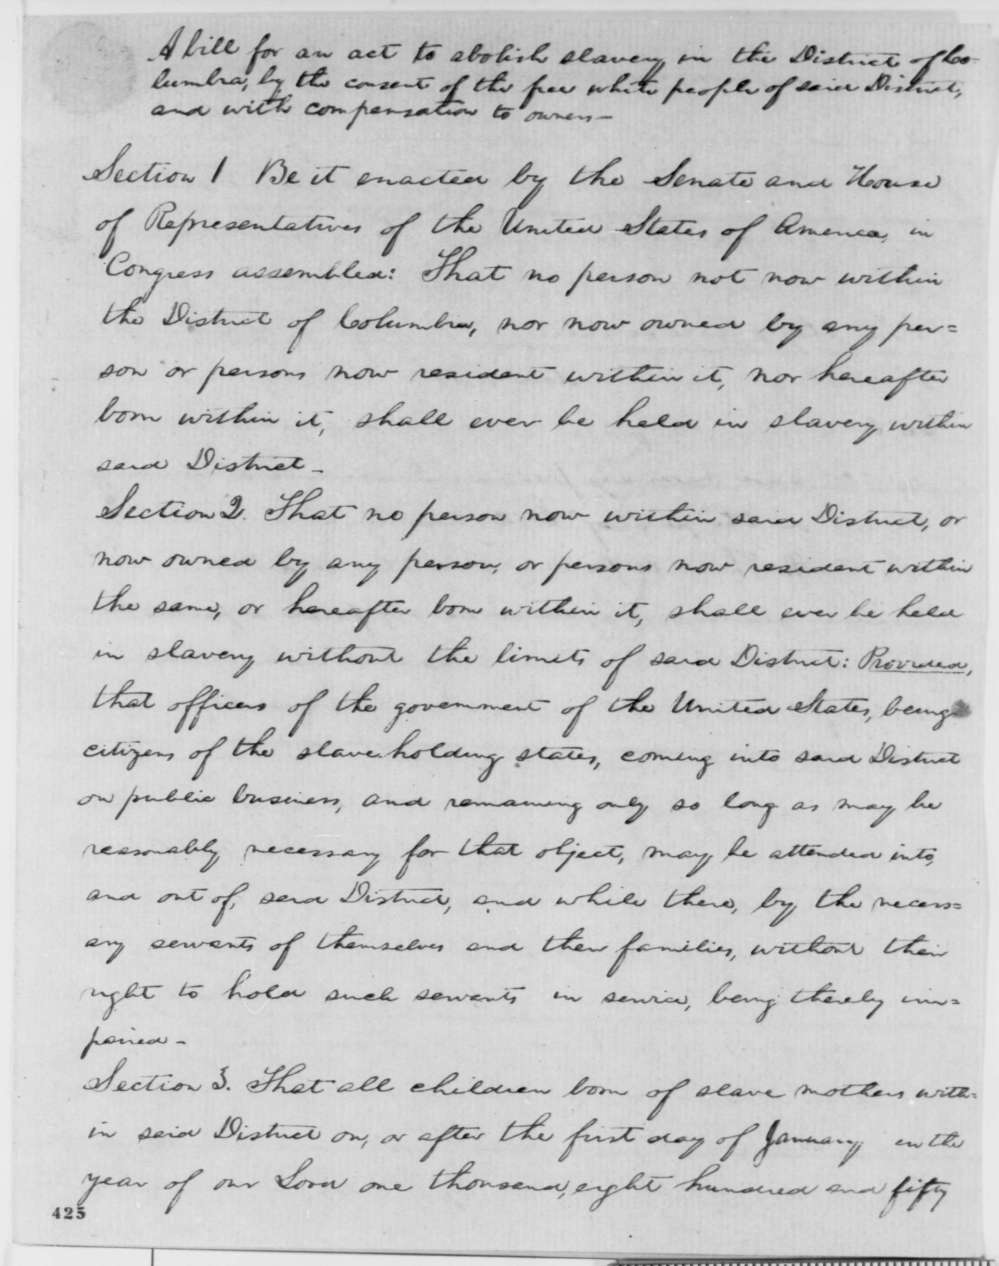 medium resolution of Lesson Plan - Lincoln's First Inaugural Address